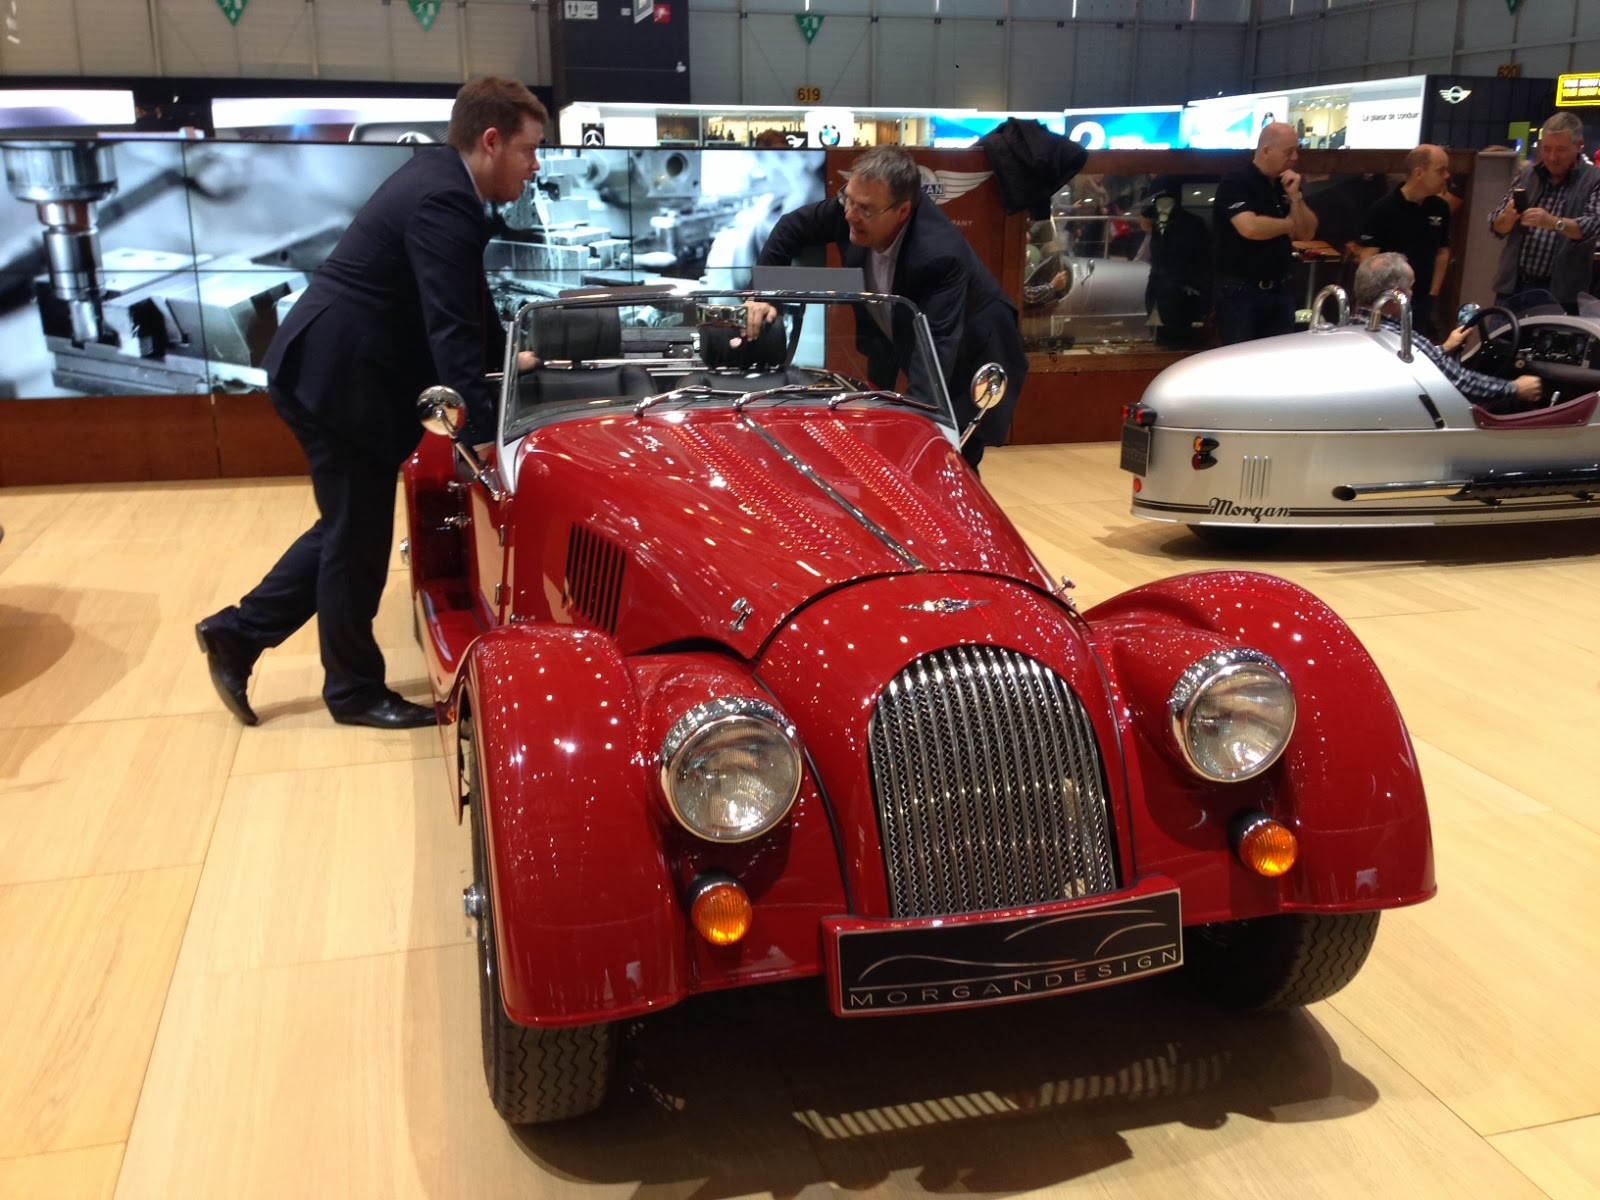 Morgan Motors at the Geneva Motor Show